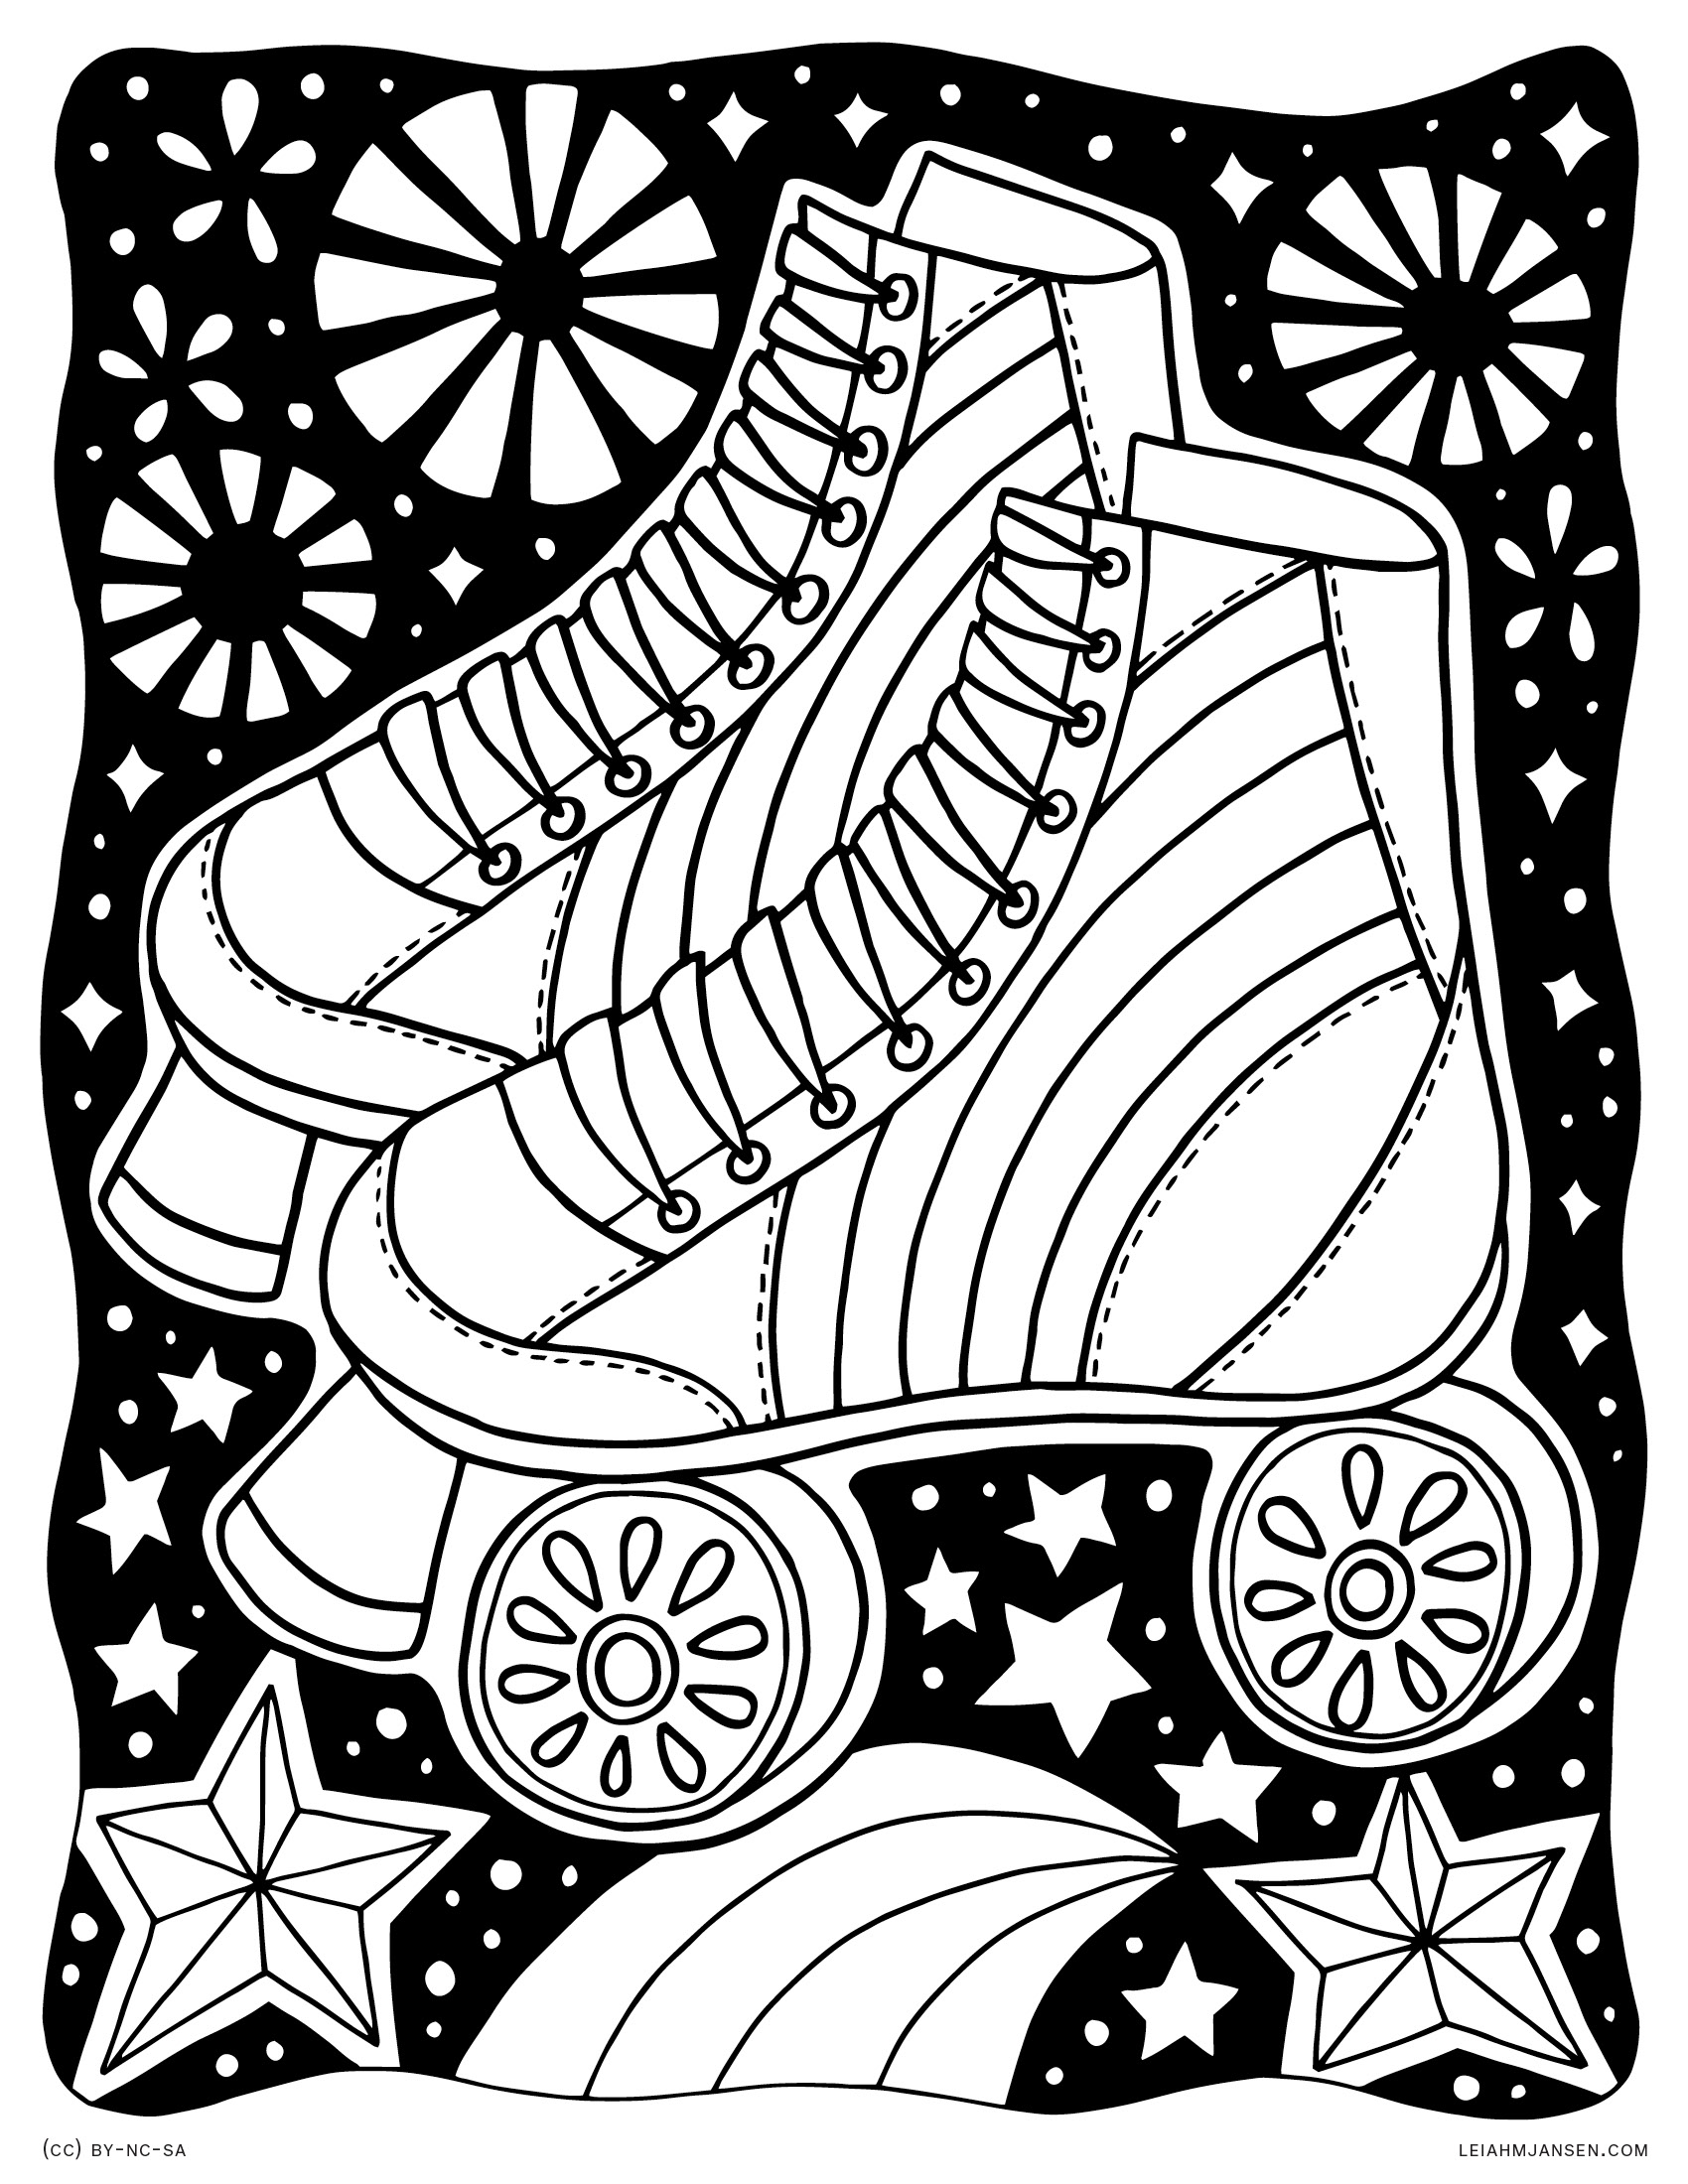 Magical Rainbow Rollerskates - Blacklight Starry Roller Skates - Free Printable Coloring Page for Adults and Kids, by leiahmjansen.com